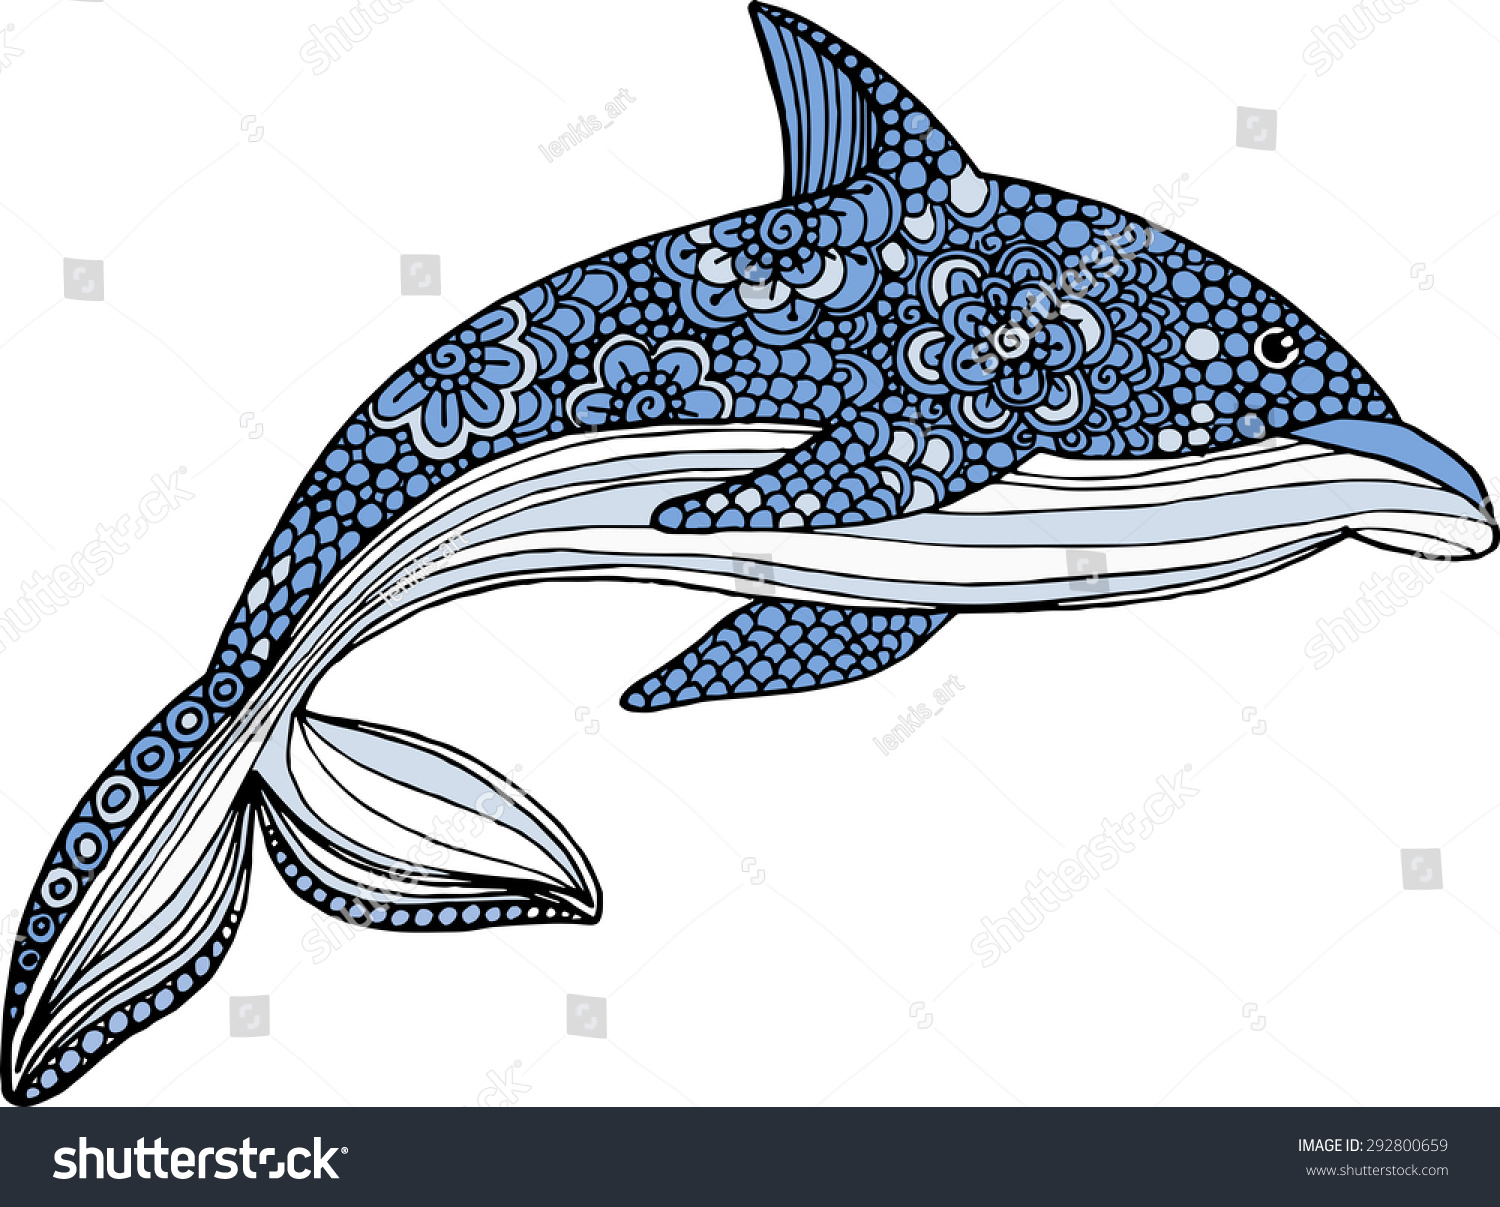 Stock vector ethnic animal doodle detail pattern killer whale - Vector Hand Drawn Dolphin Illustration With Doodle Ornaments Decorative Dolphin Drawing